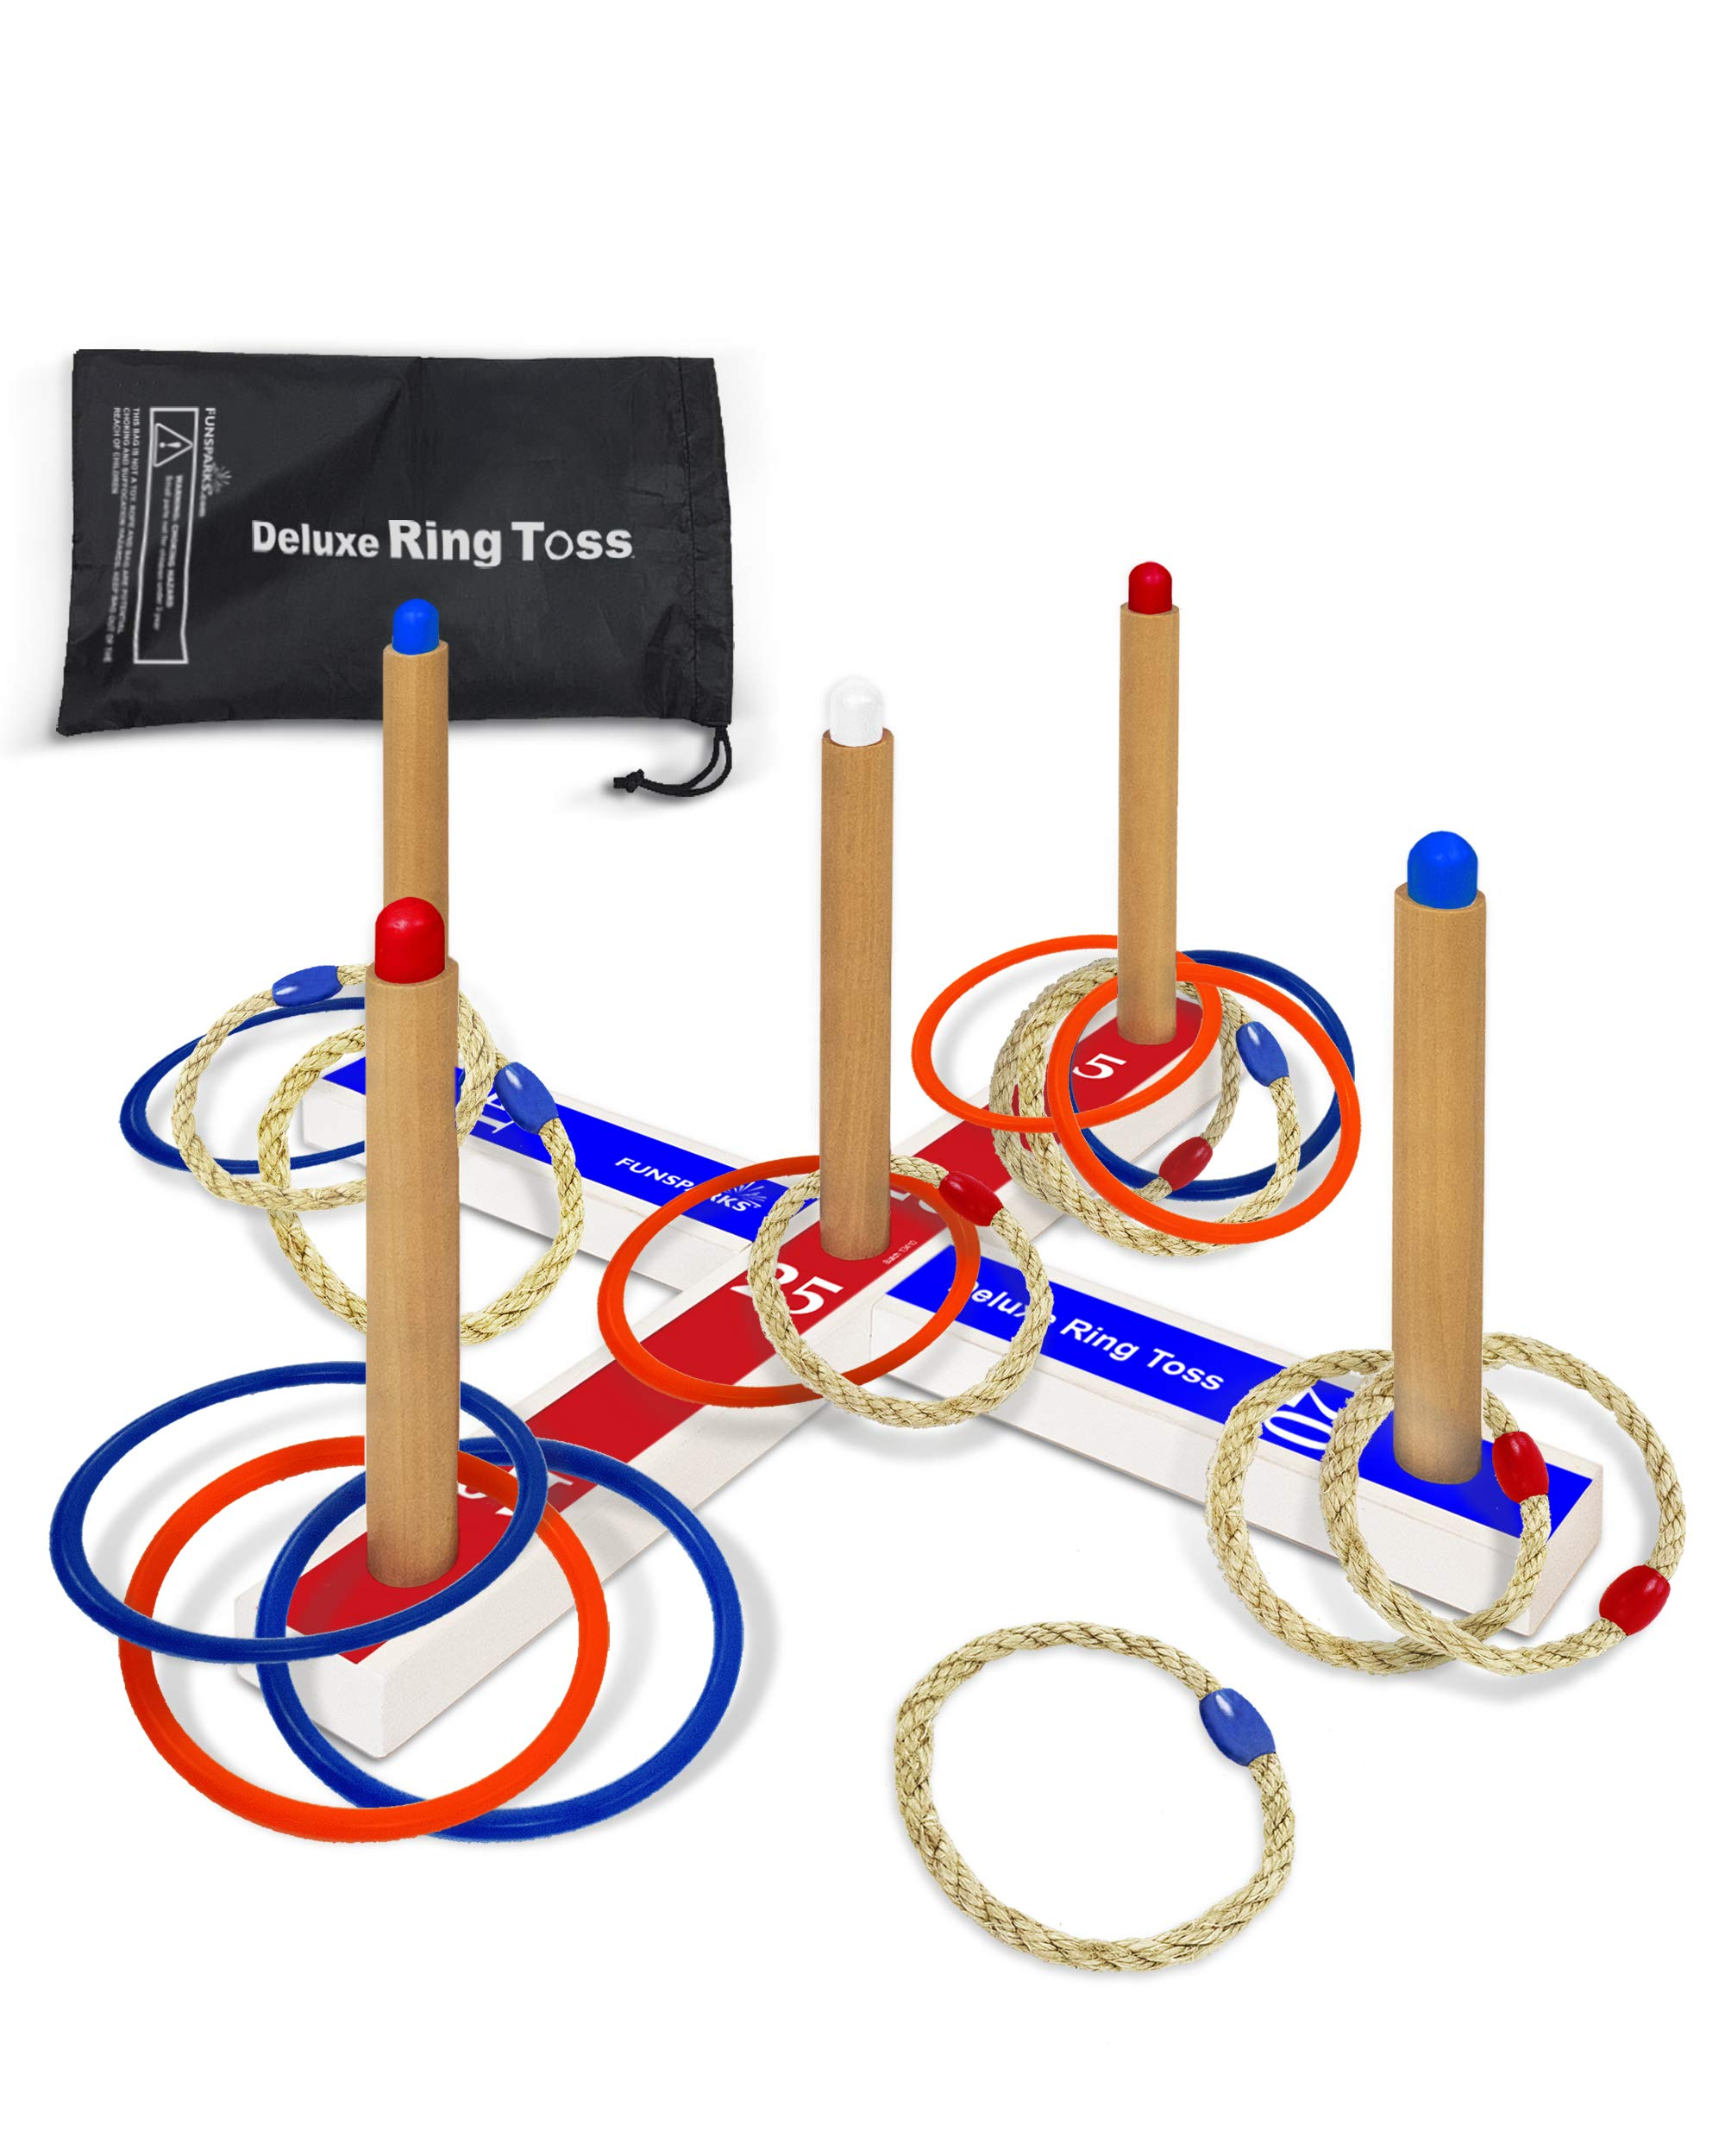 Deluxe Ring Toss Game Set - Outdoor Kids & Adults Toy Keeps Them Active and Includes a Compact Carry Bag, 8 Rope & 8 Plastic Rings - Easy to Assemble - Fun Family or Friends Game by Funsparks